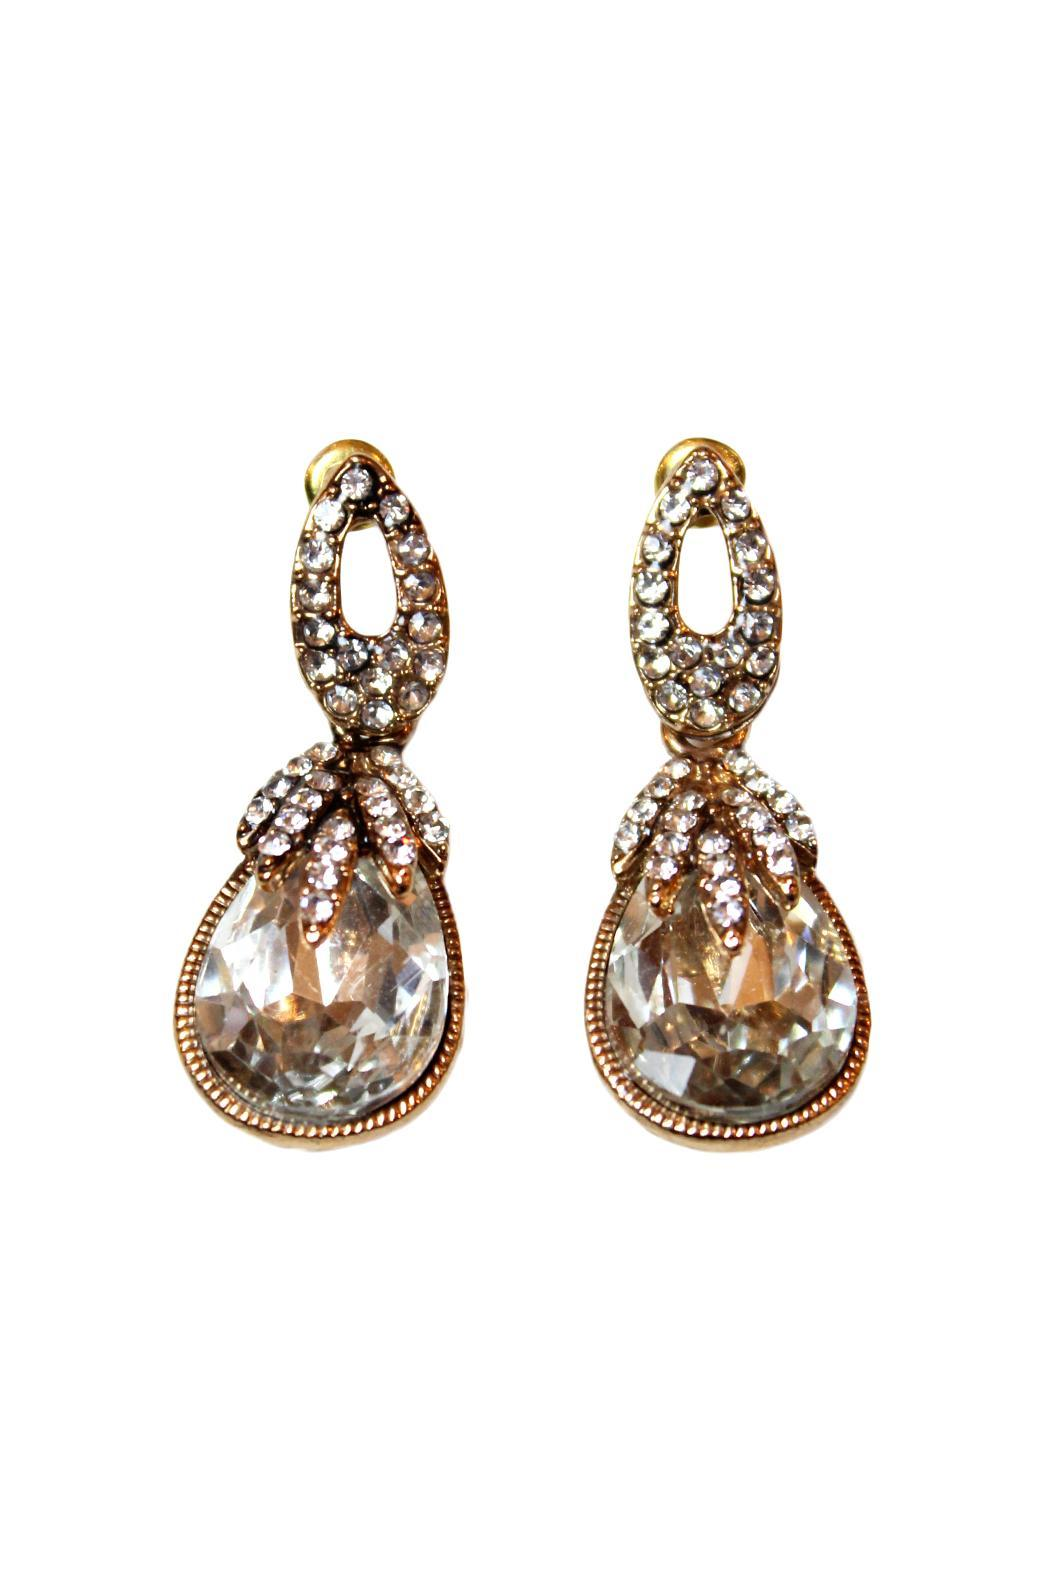 Carte Blanche French Carte Blanche French Vintage Style Earrings From Vancouver